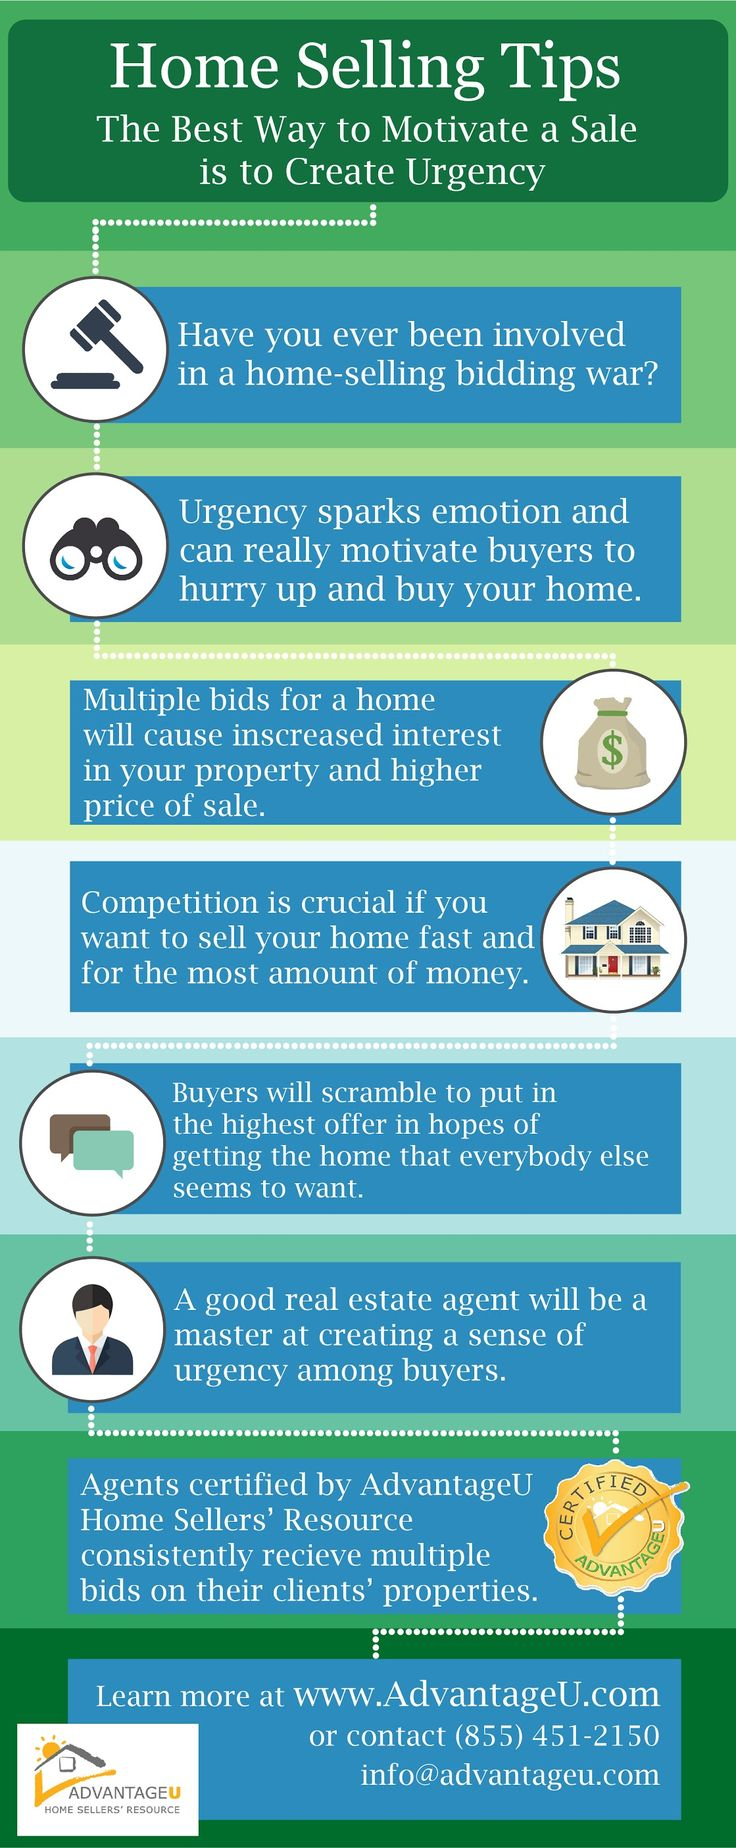 Trocal 76 entry door tiltturnwindows ca - Home Selling Tips The Best Way To Motivate A Sale Is To Create Urgency